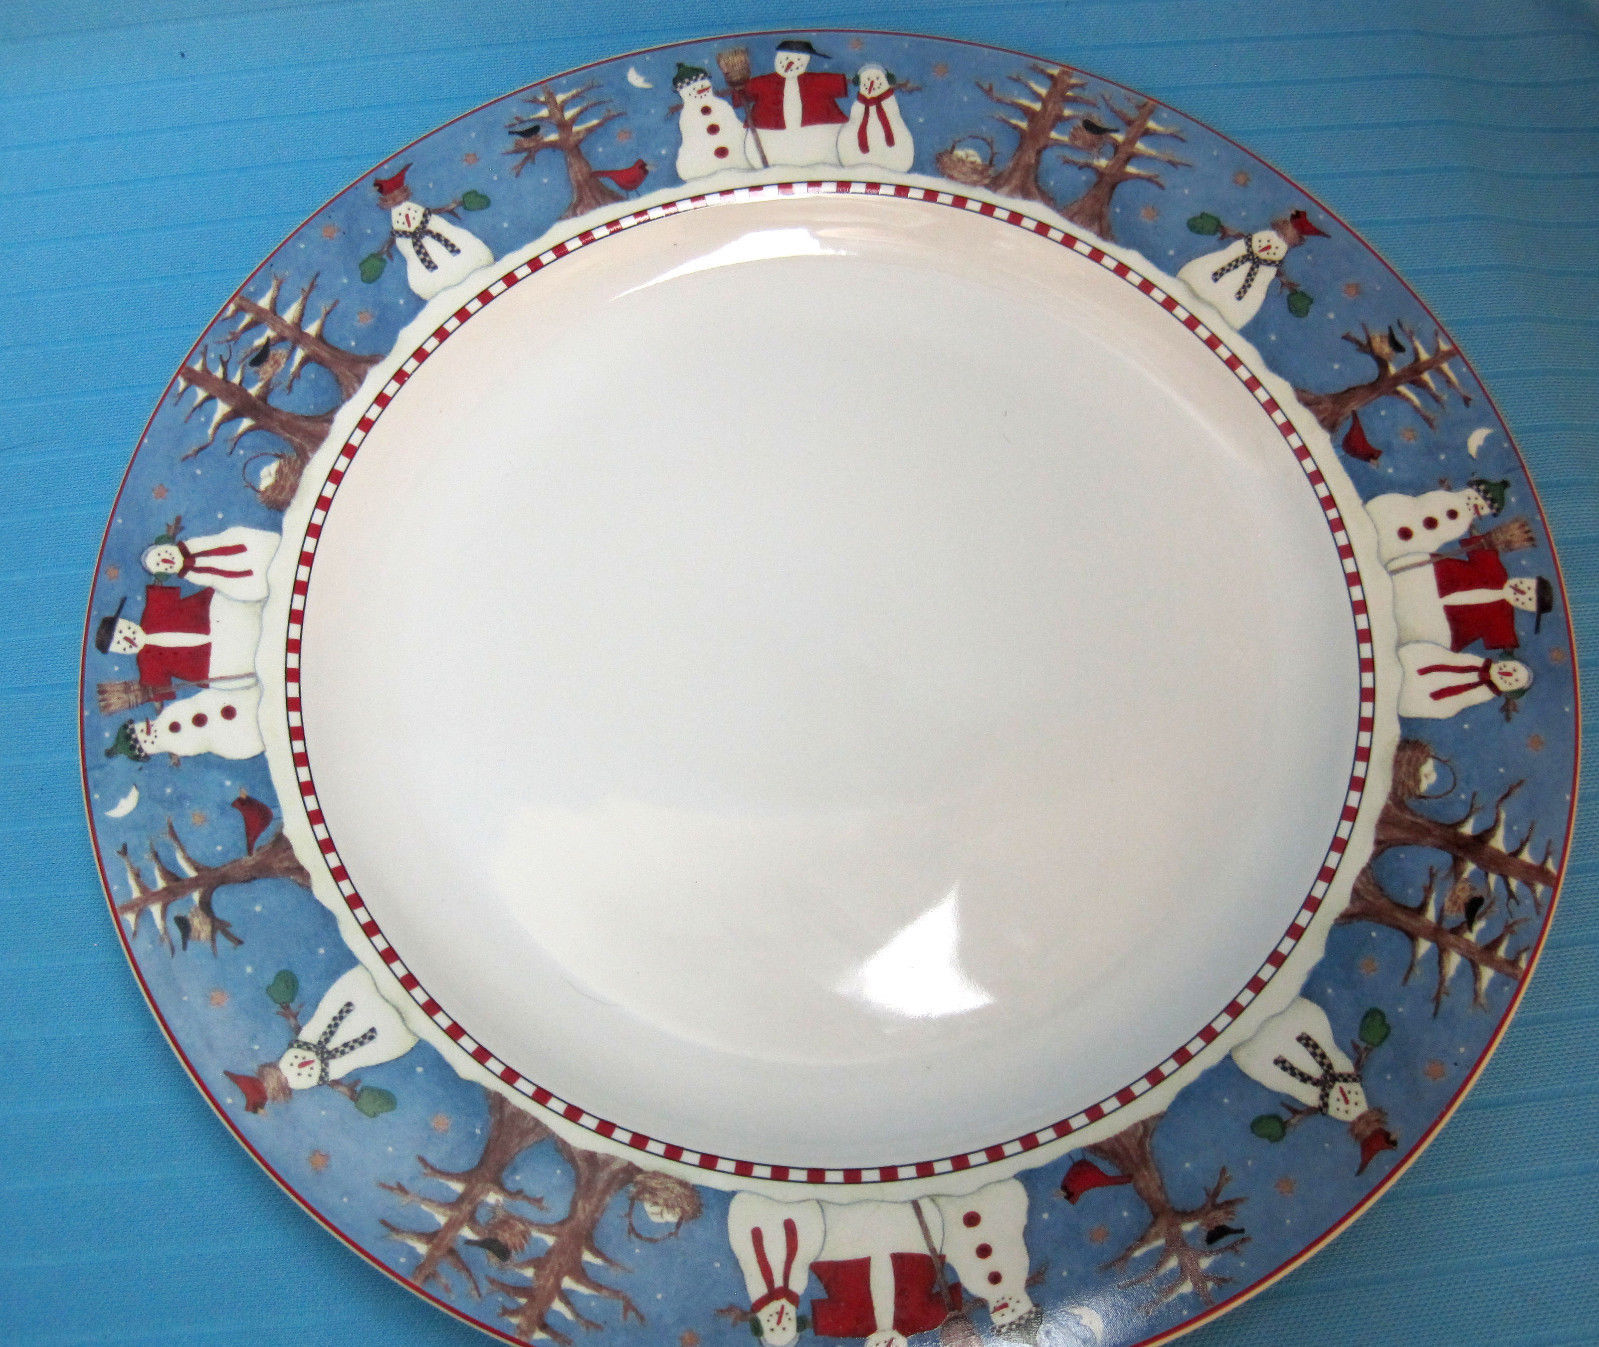 4 Snowman⛄ Dinner Plate Debbie Mumm by and 50 similar items